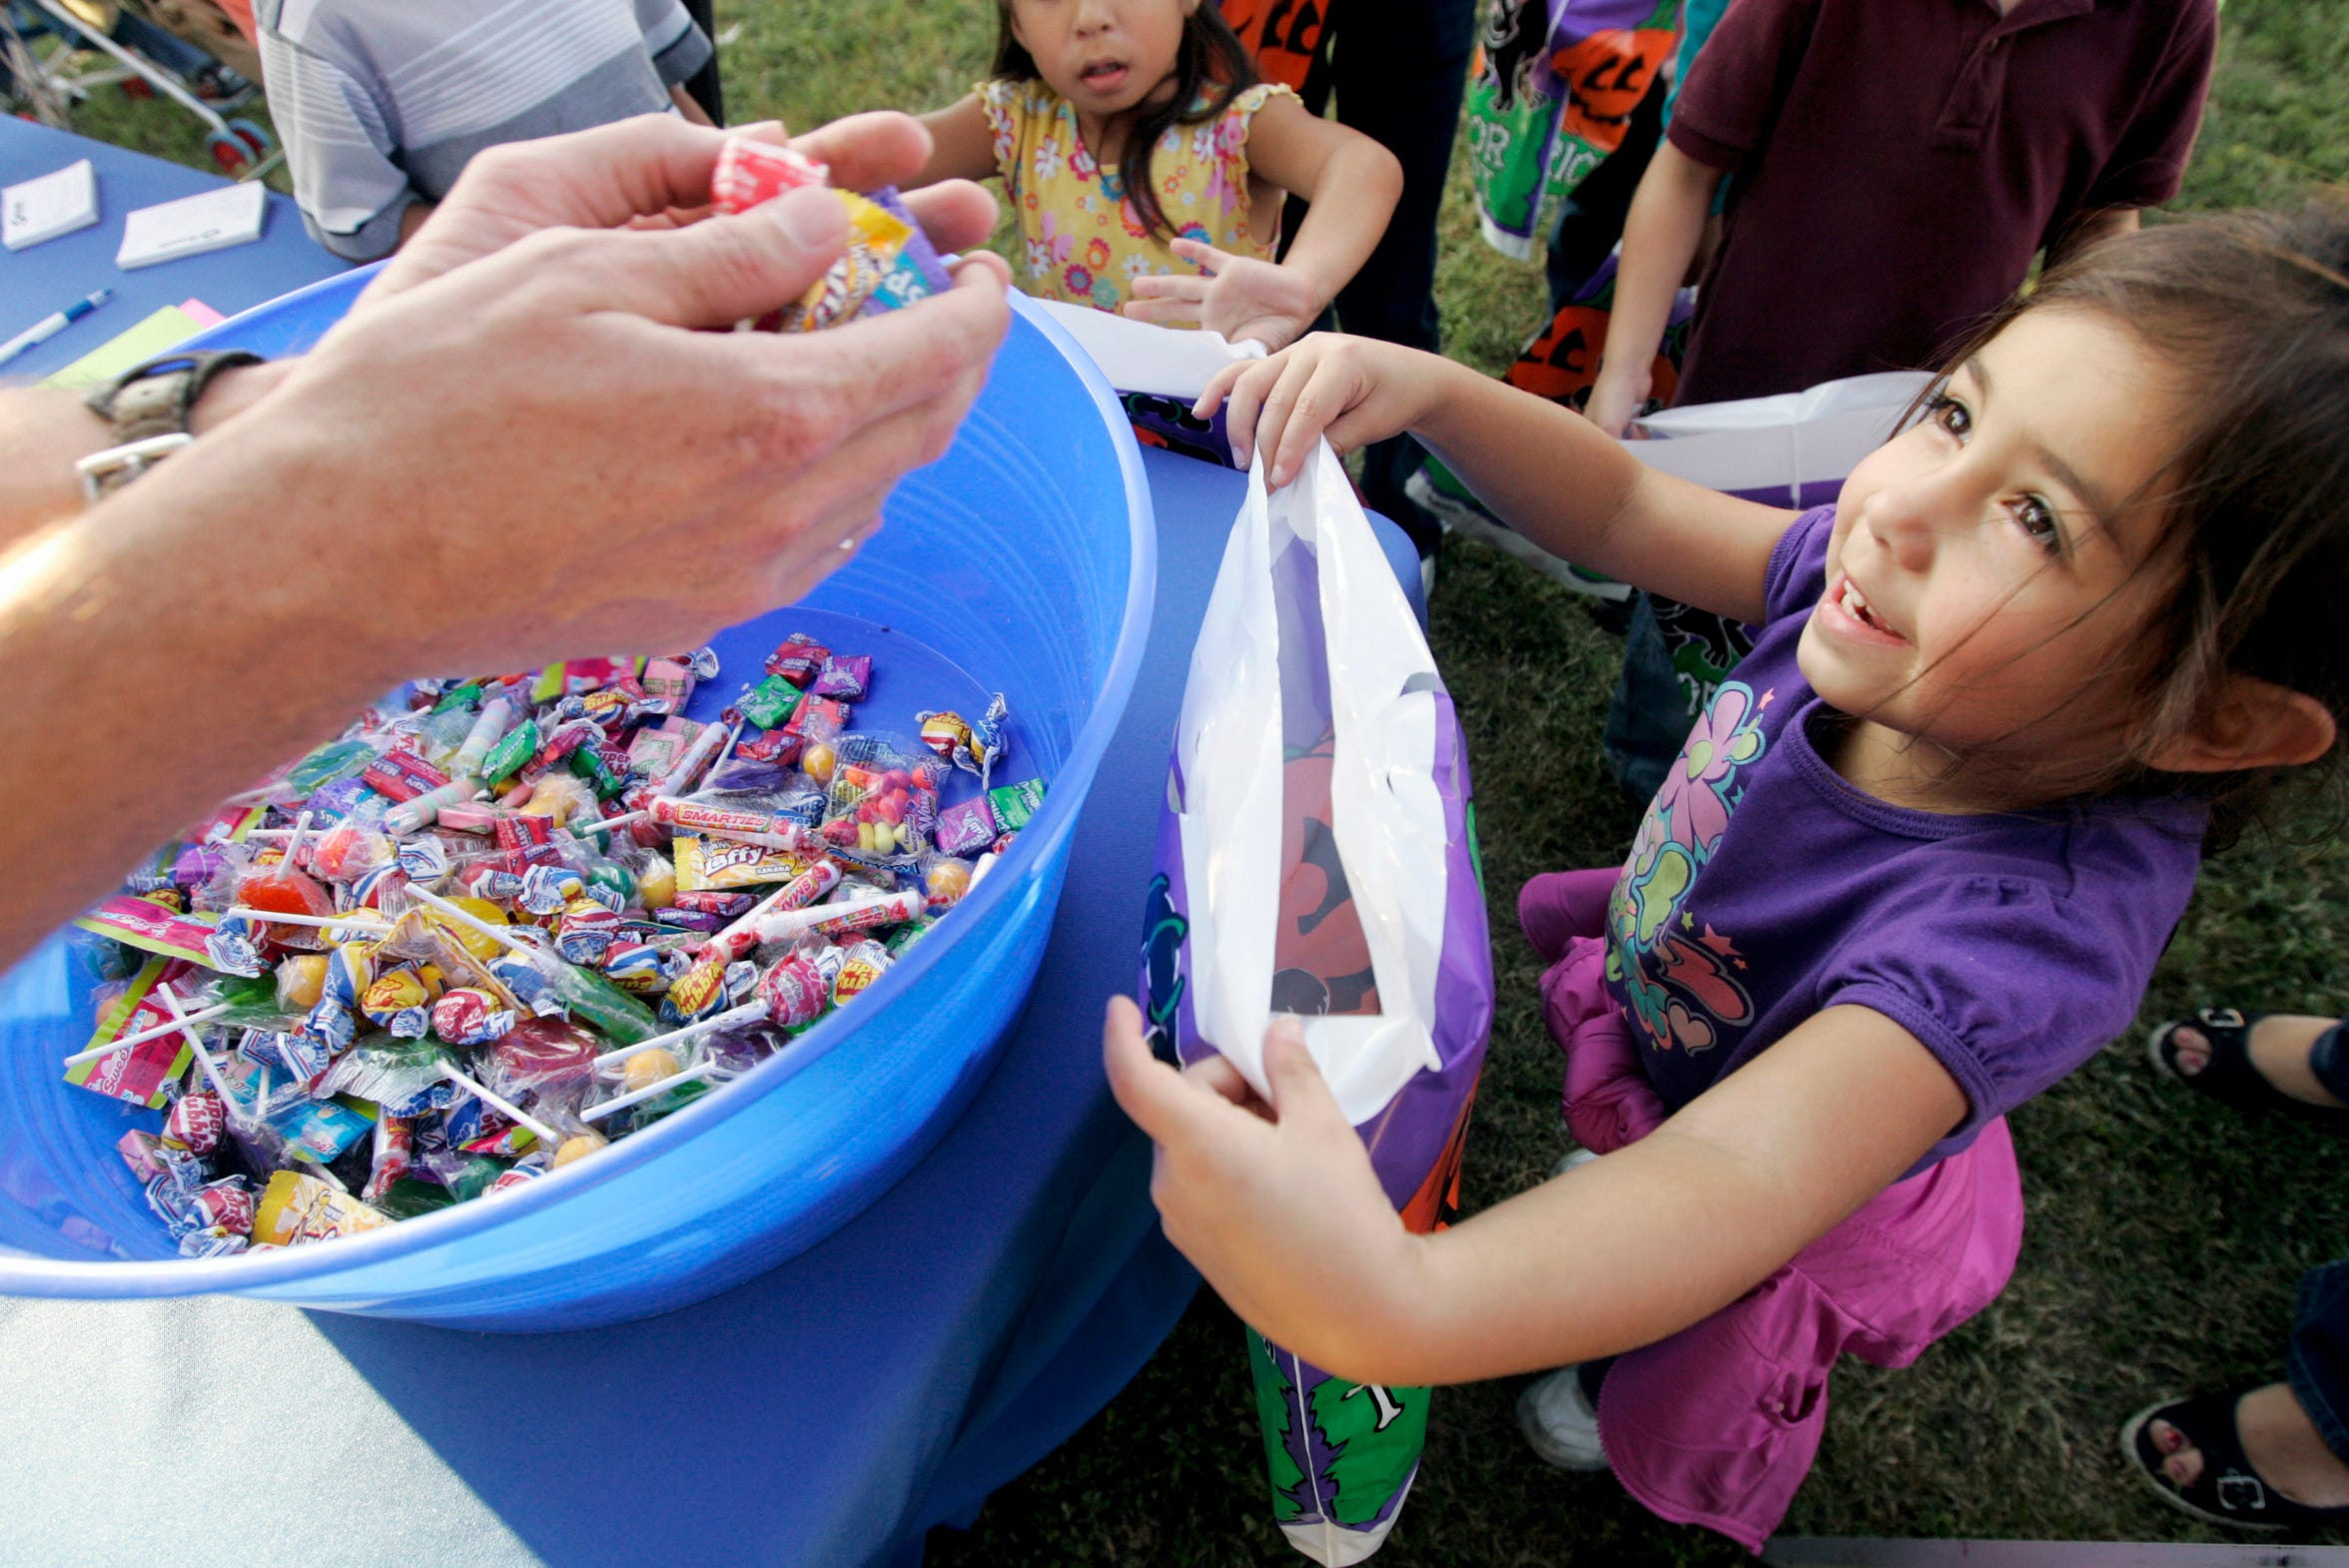 Find out where to go trick or treating this Halloween with our list.